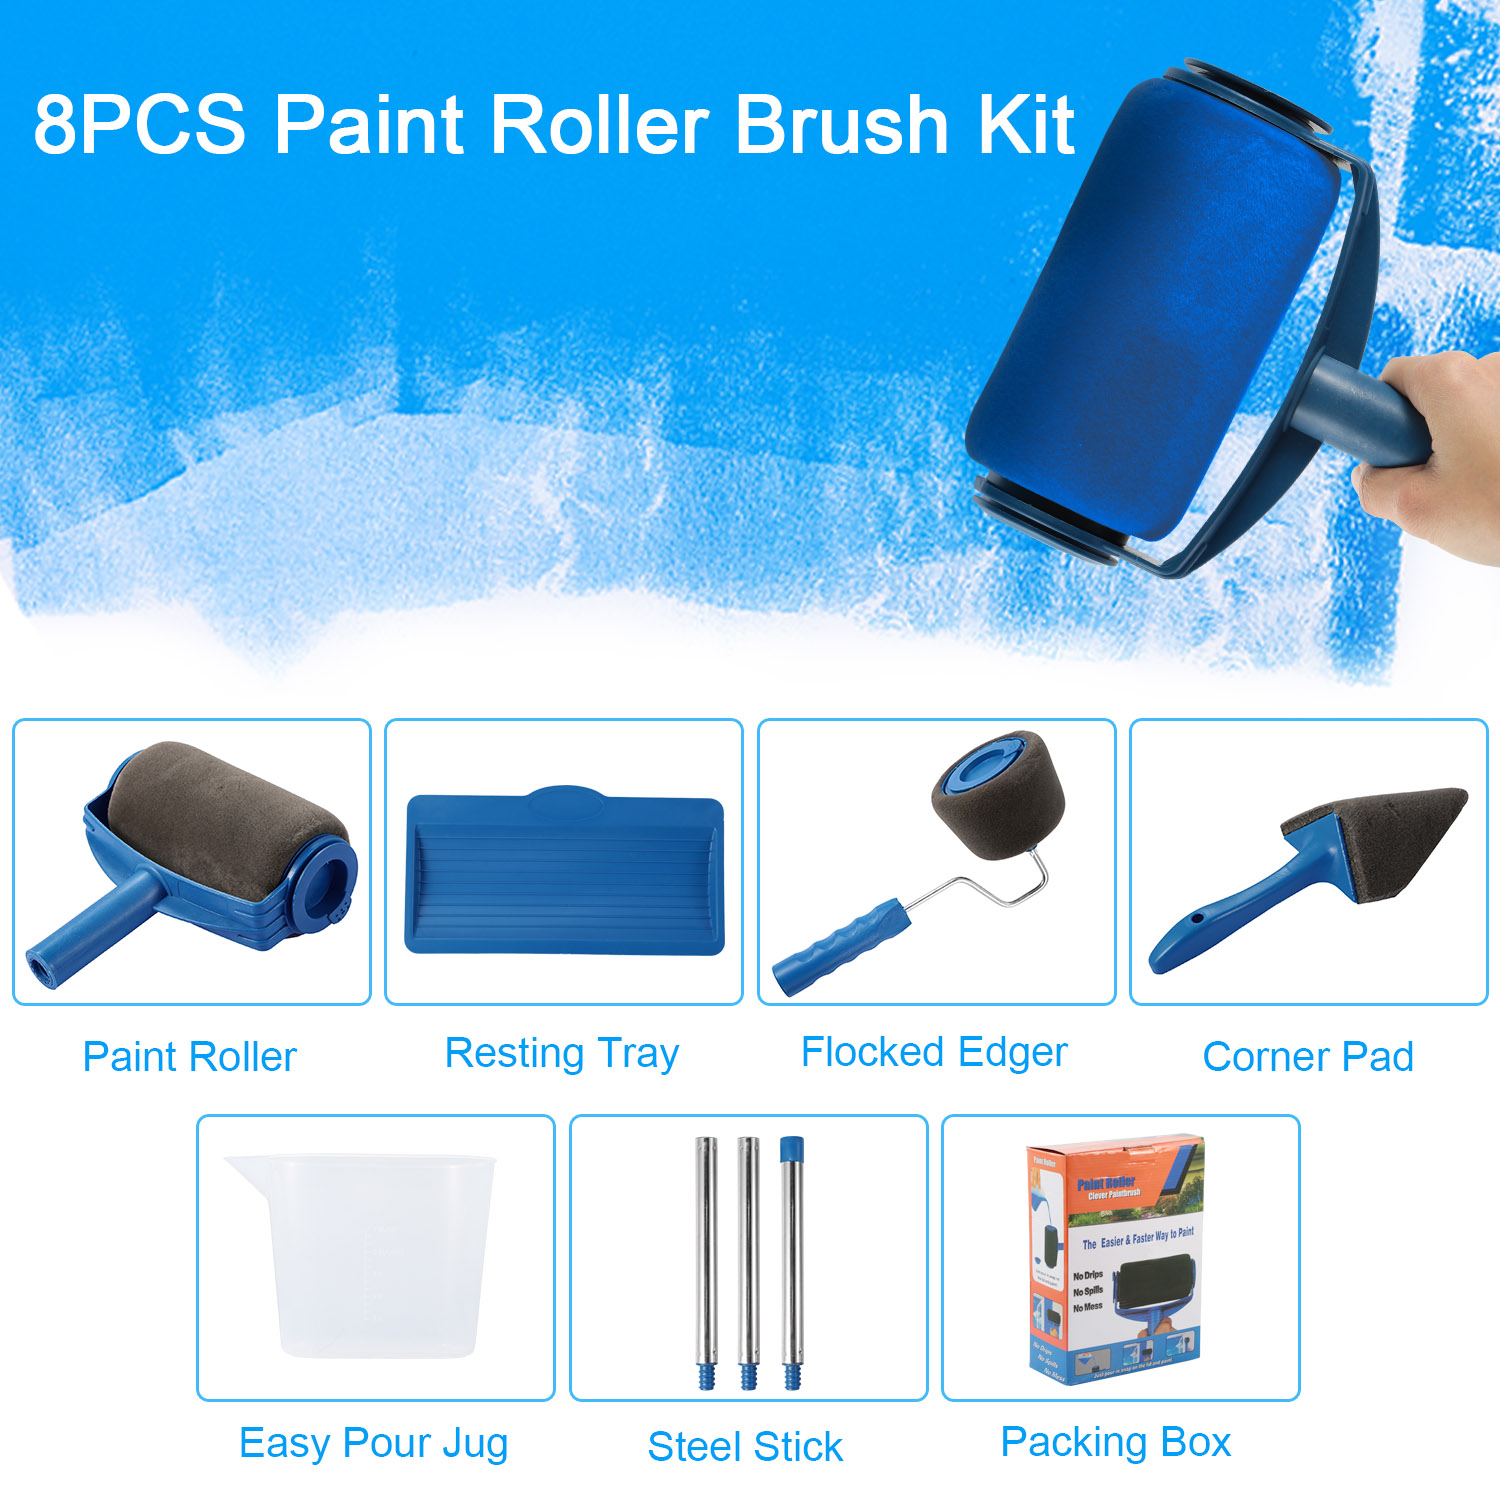 8Pcs Paint Roller Brush Kit Paint Runner Pro Set Brush Handle Flocked Edger with 3 Extendable Poles DIY Wall Painting for Home Office